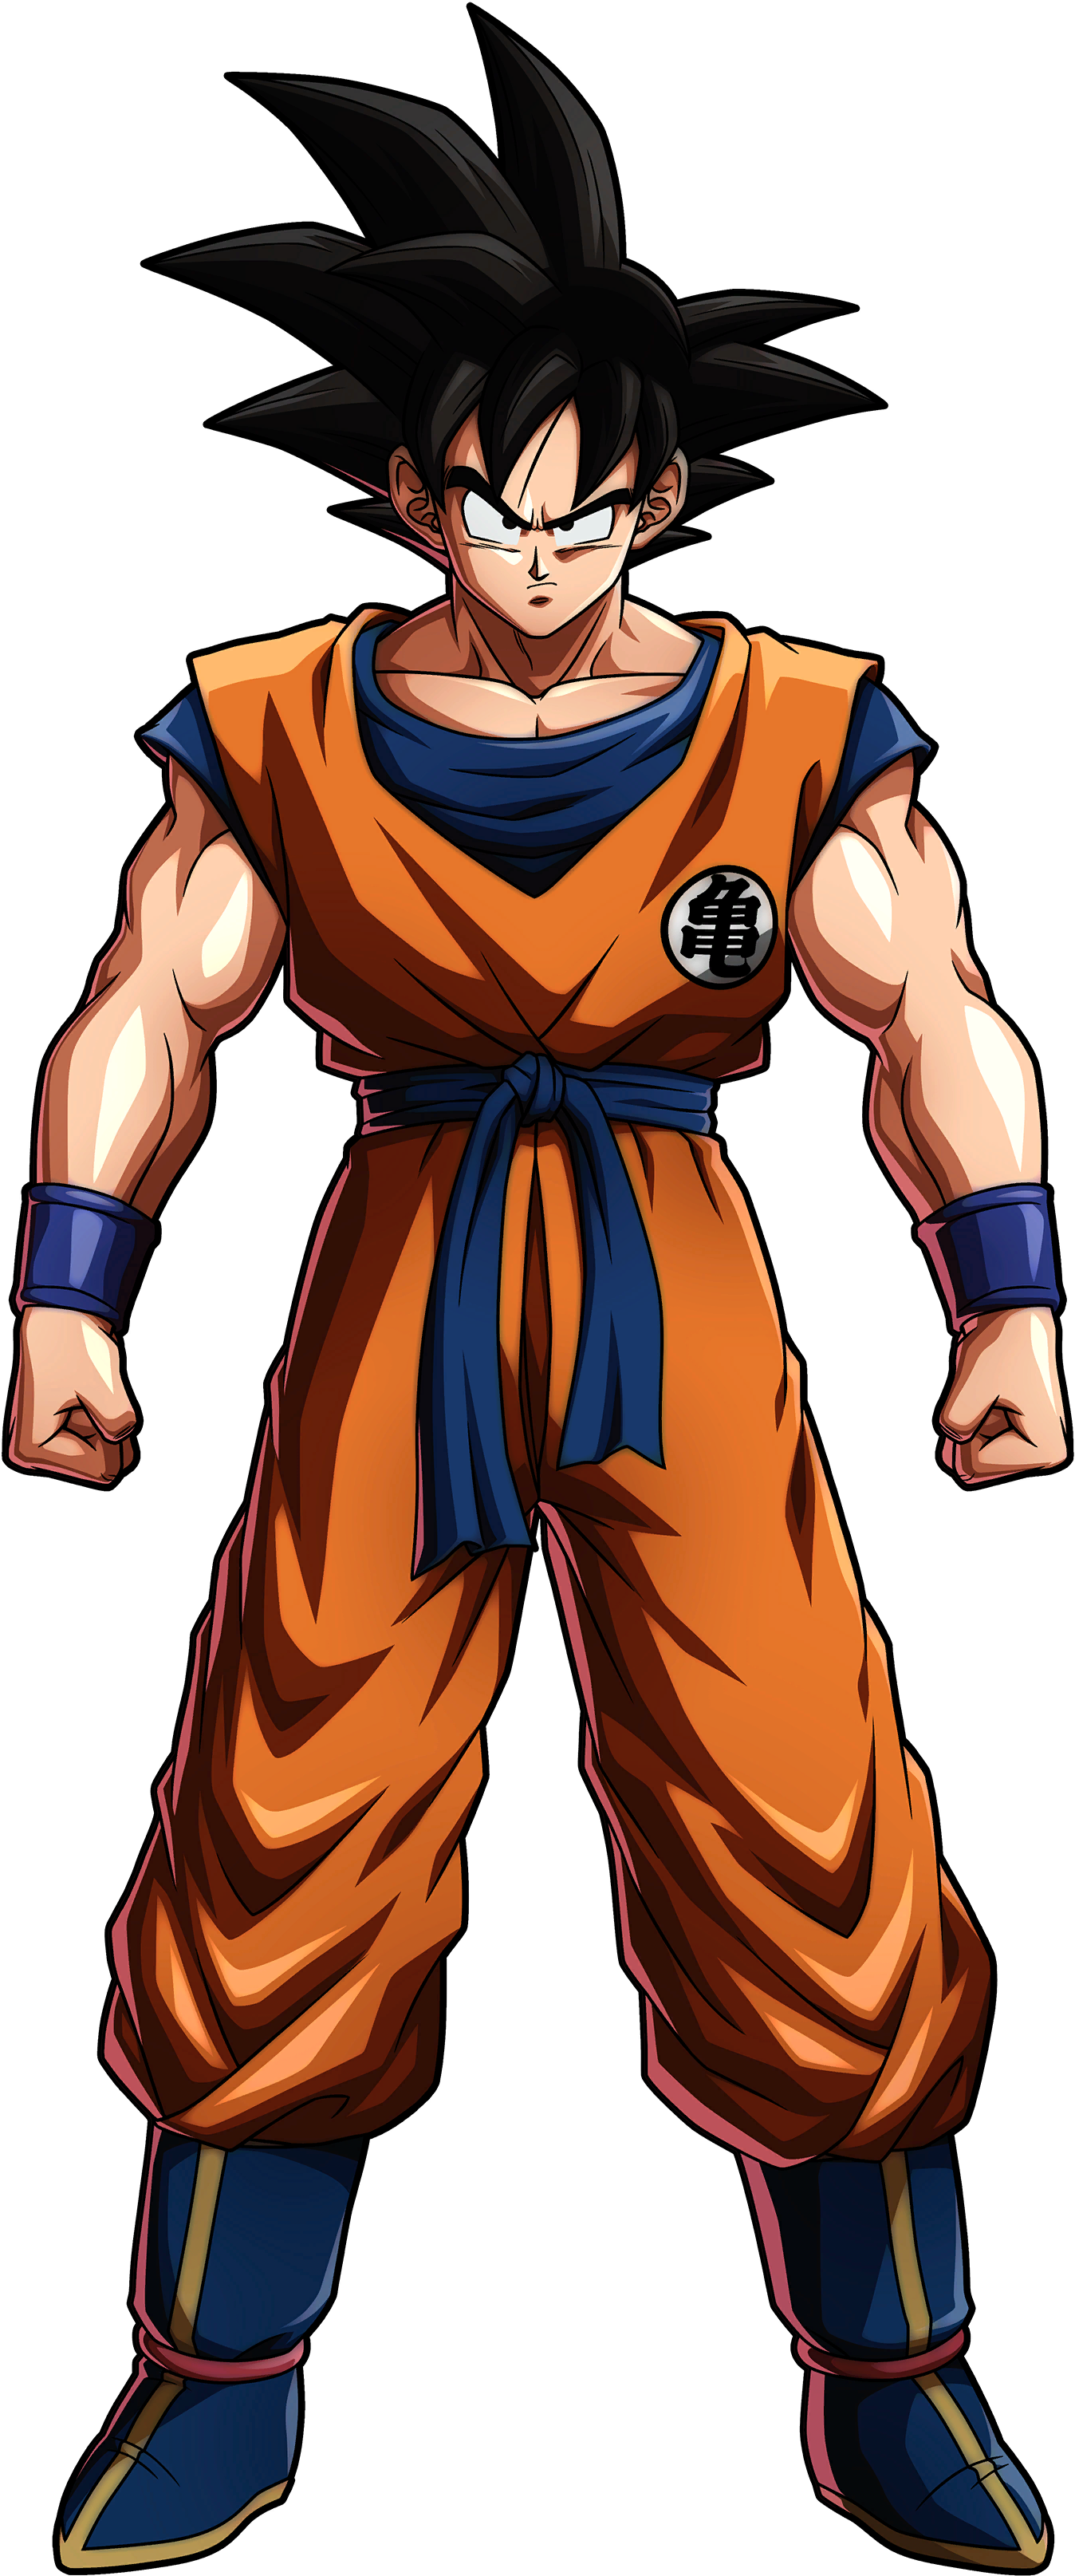 Saiyan Saga Goku Render (Dragon Ball FighterZ).png